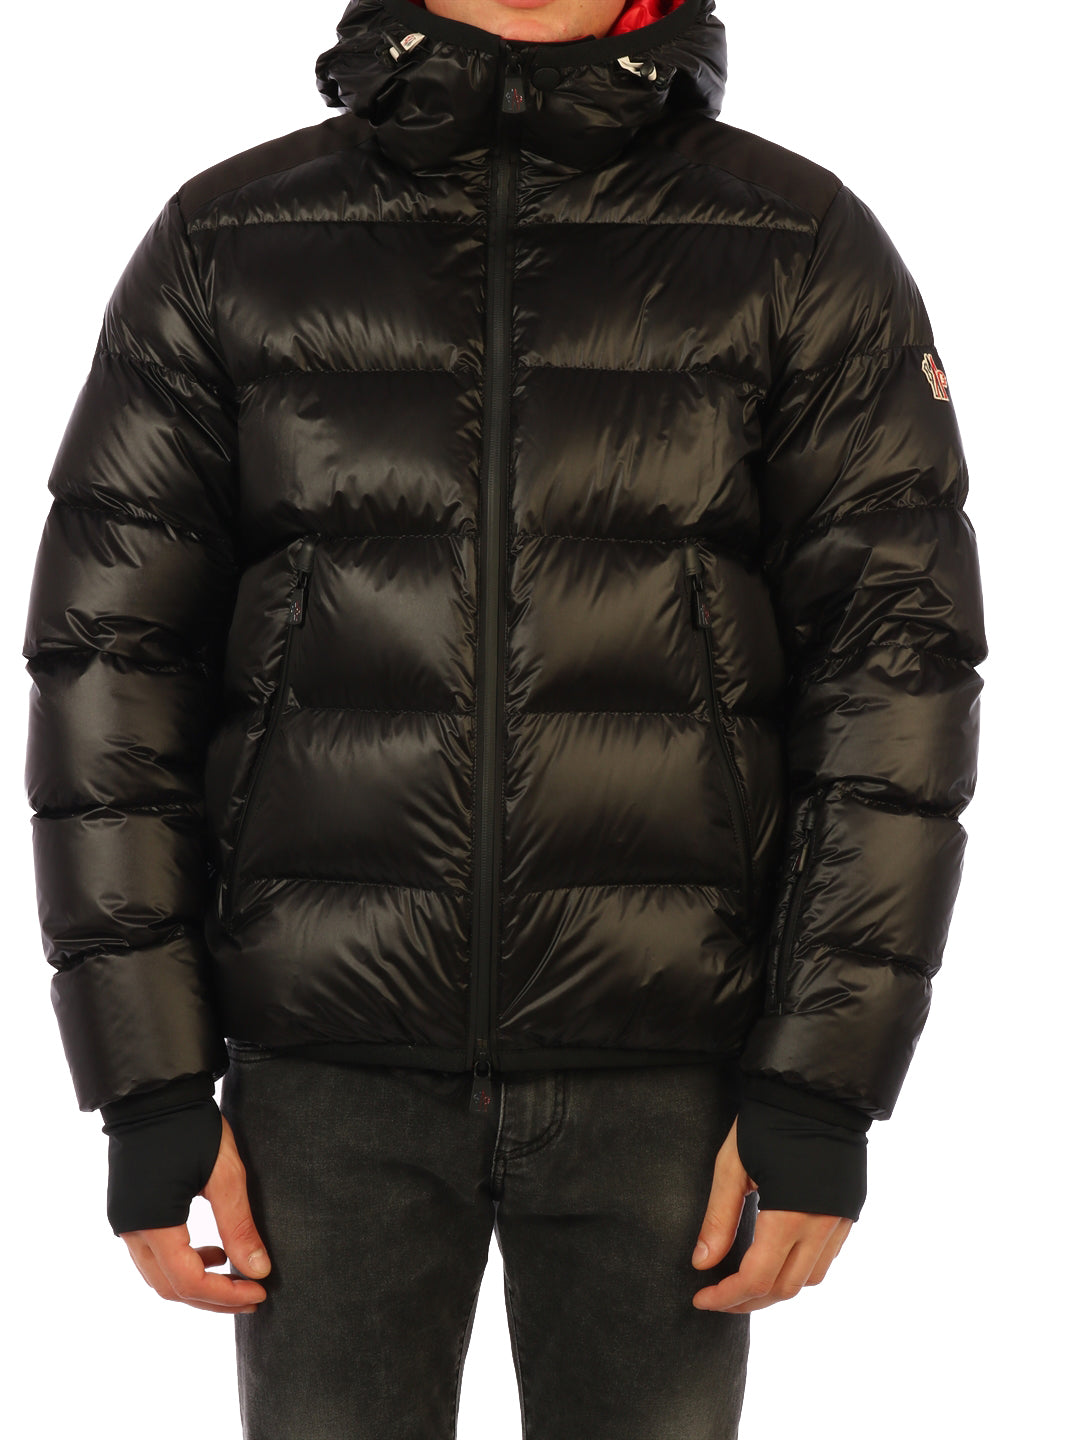 Moncler Grenoble Downs MONCLER GRENOBLE PADDED DOWN JACKET